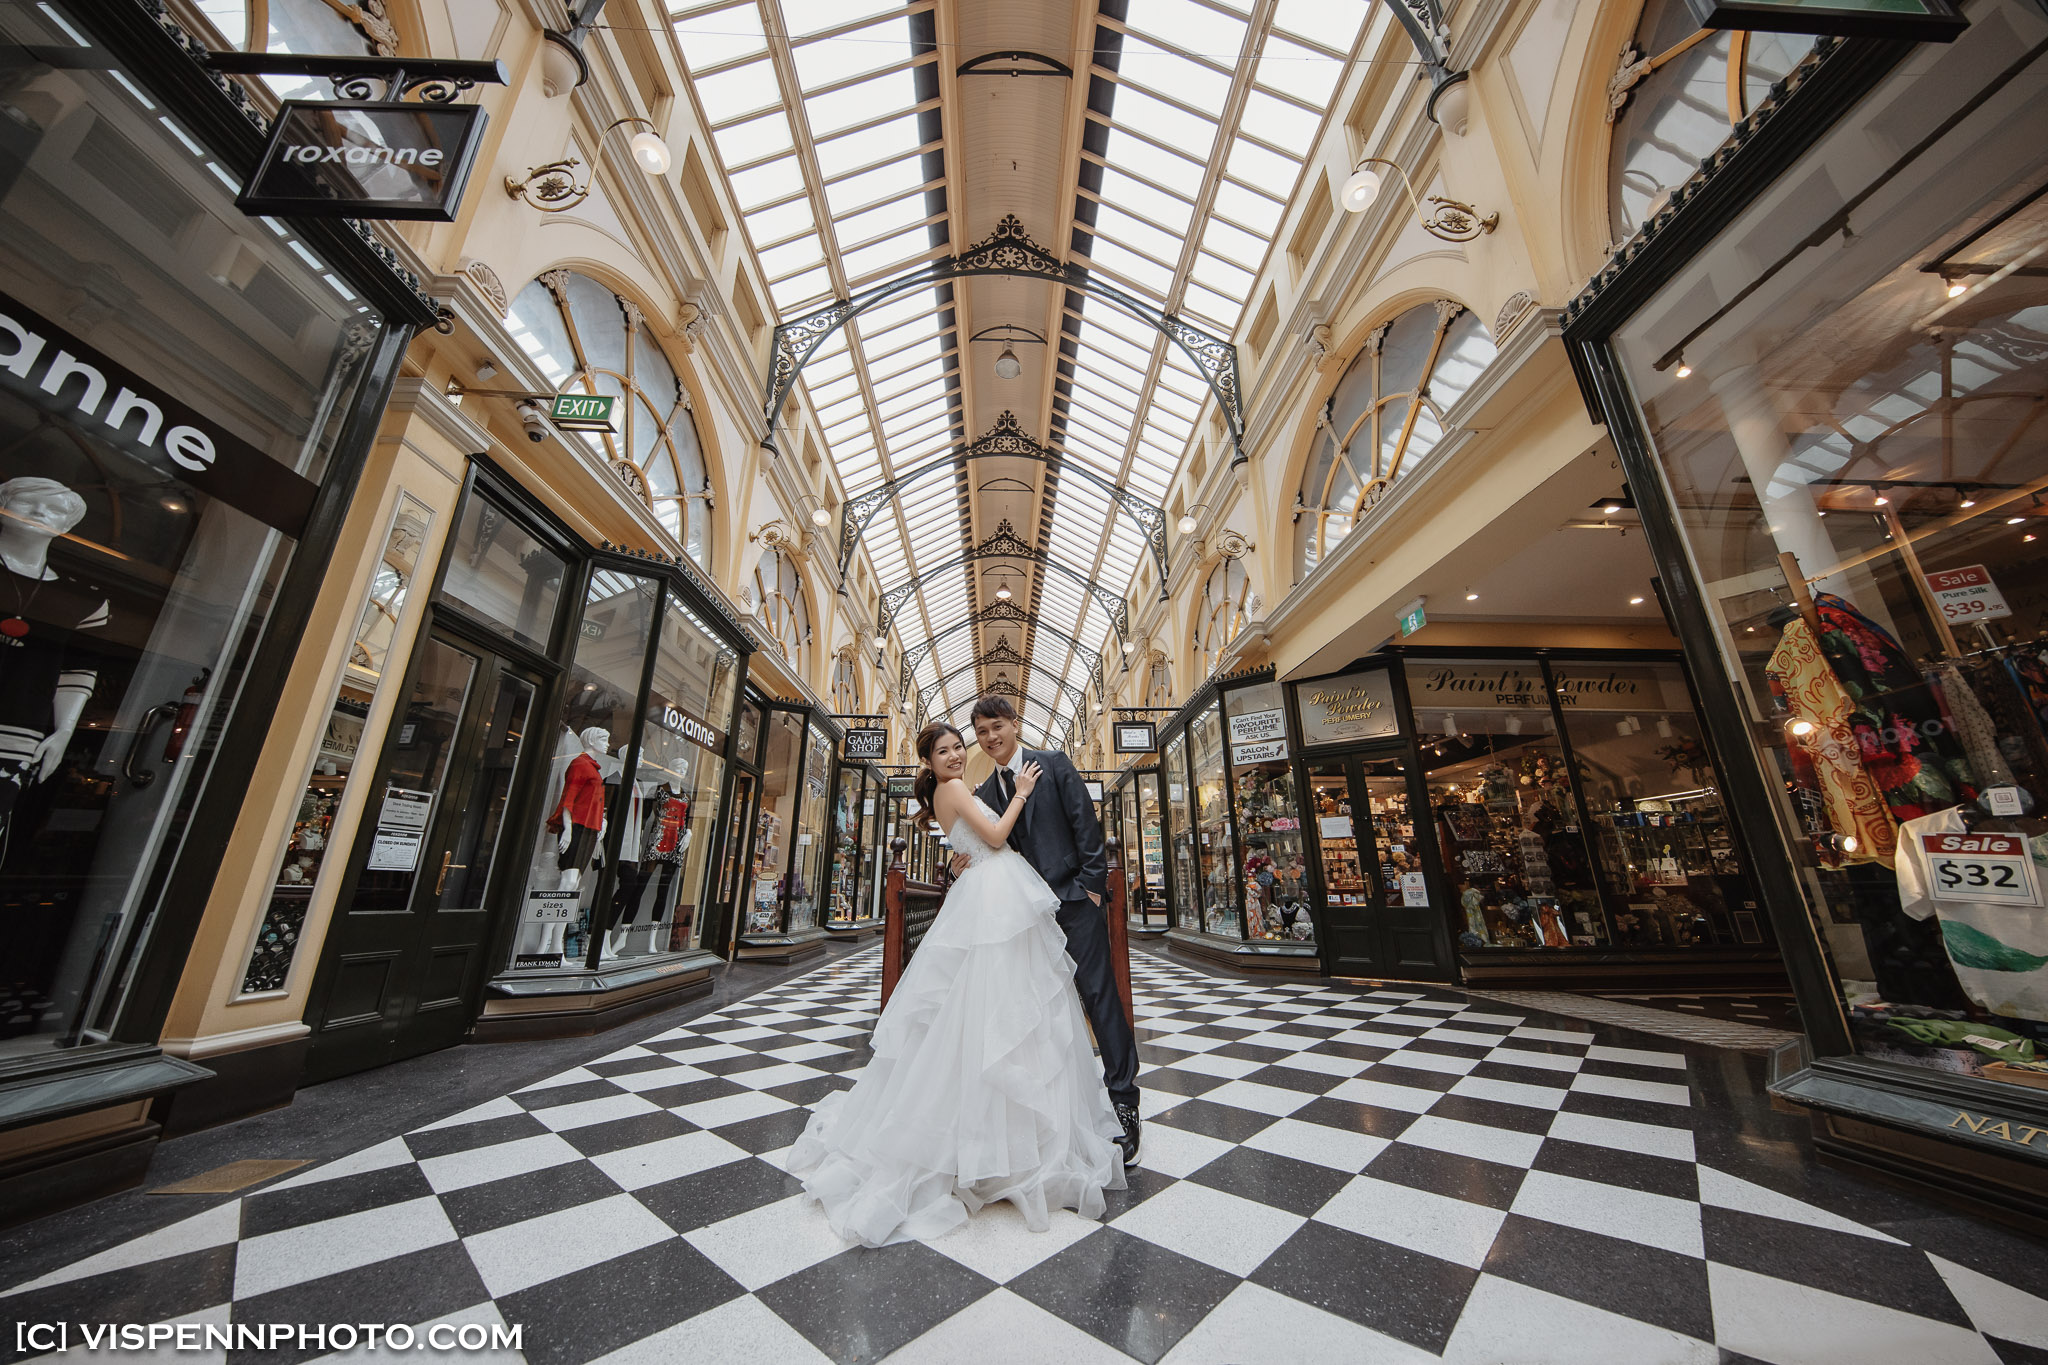 PRE WEDDING Photography Melbourne GiGi 6032 EOSR ZHPENN